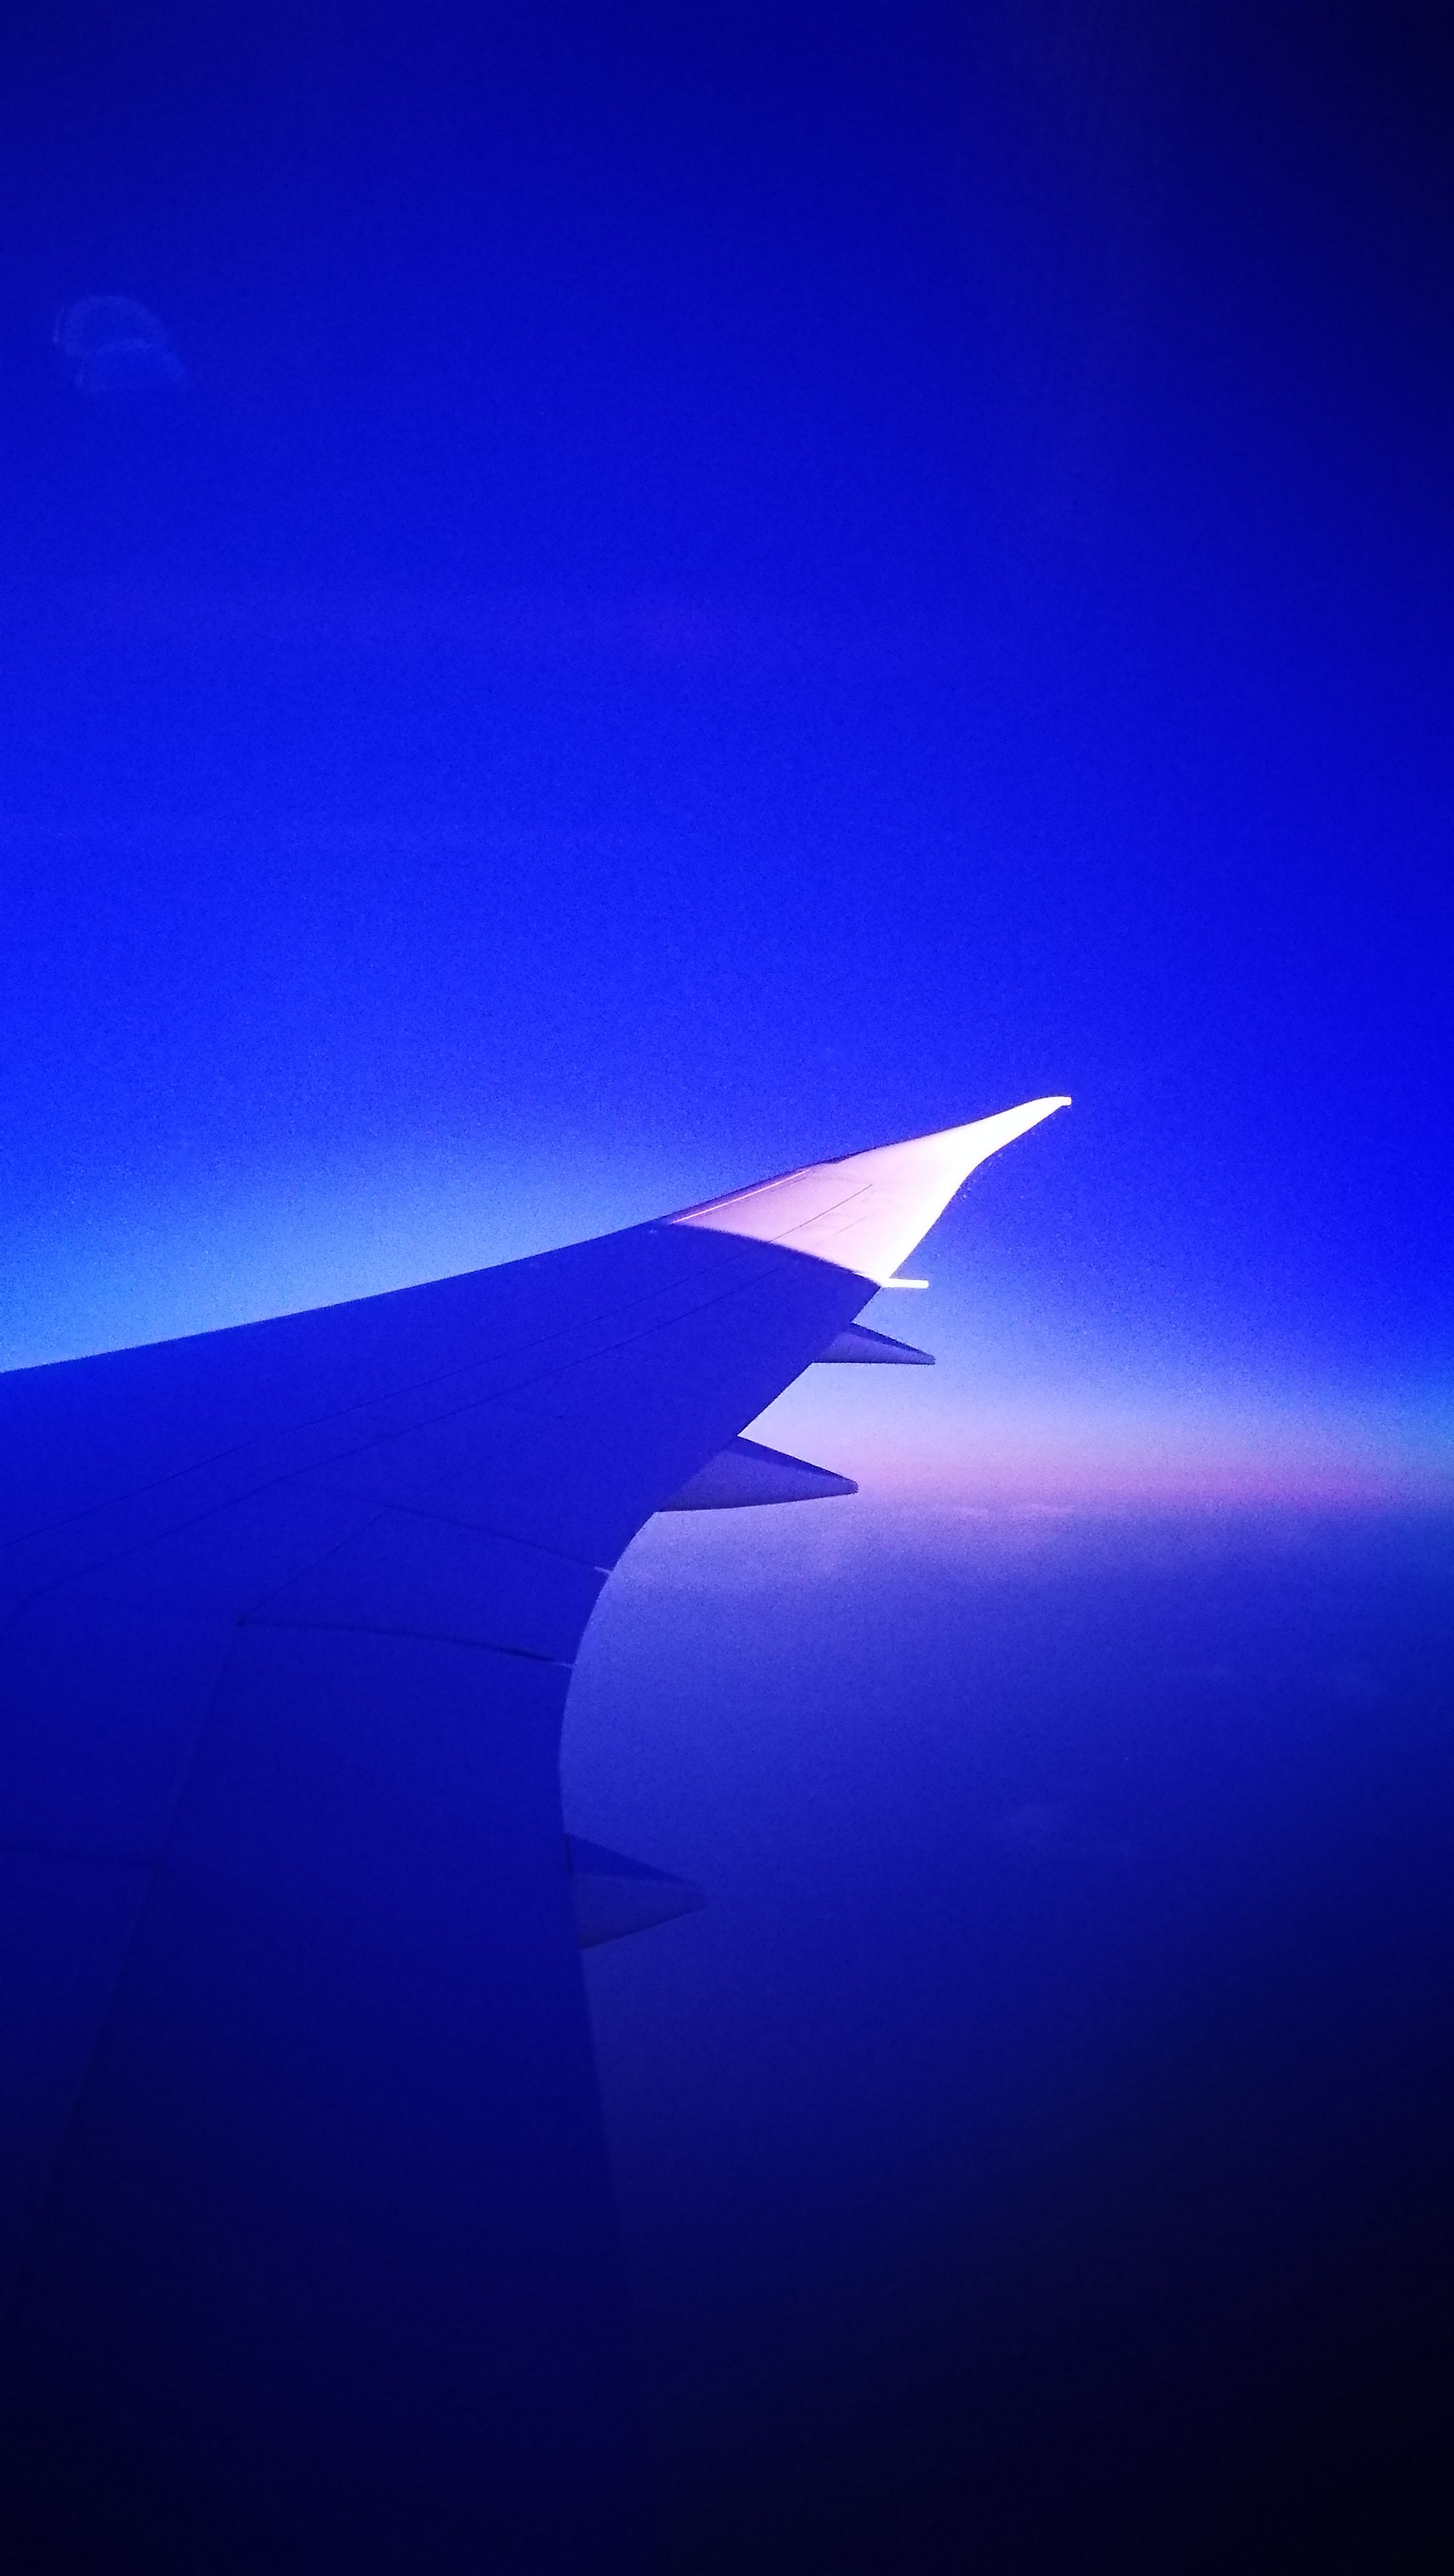 sea, blue, part of, aircraft wing, cropped, transportation, water, tranquil scene, airplane, flying, mode of transport, aerial view, scenics, horizon over water, tranquility, beauty in nature, idyllic, clear sky, seascape, nature, air vehicle, sky, ocean, majestic, journey, outdoors, cloudscape, waterfront, airplane wing, no people